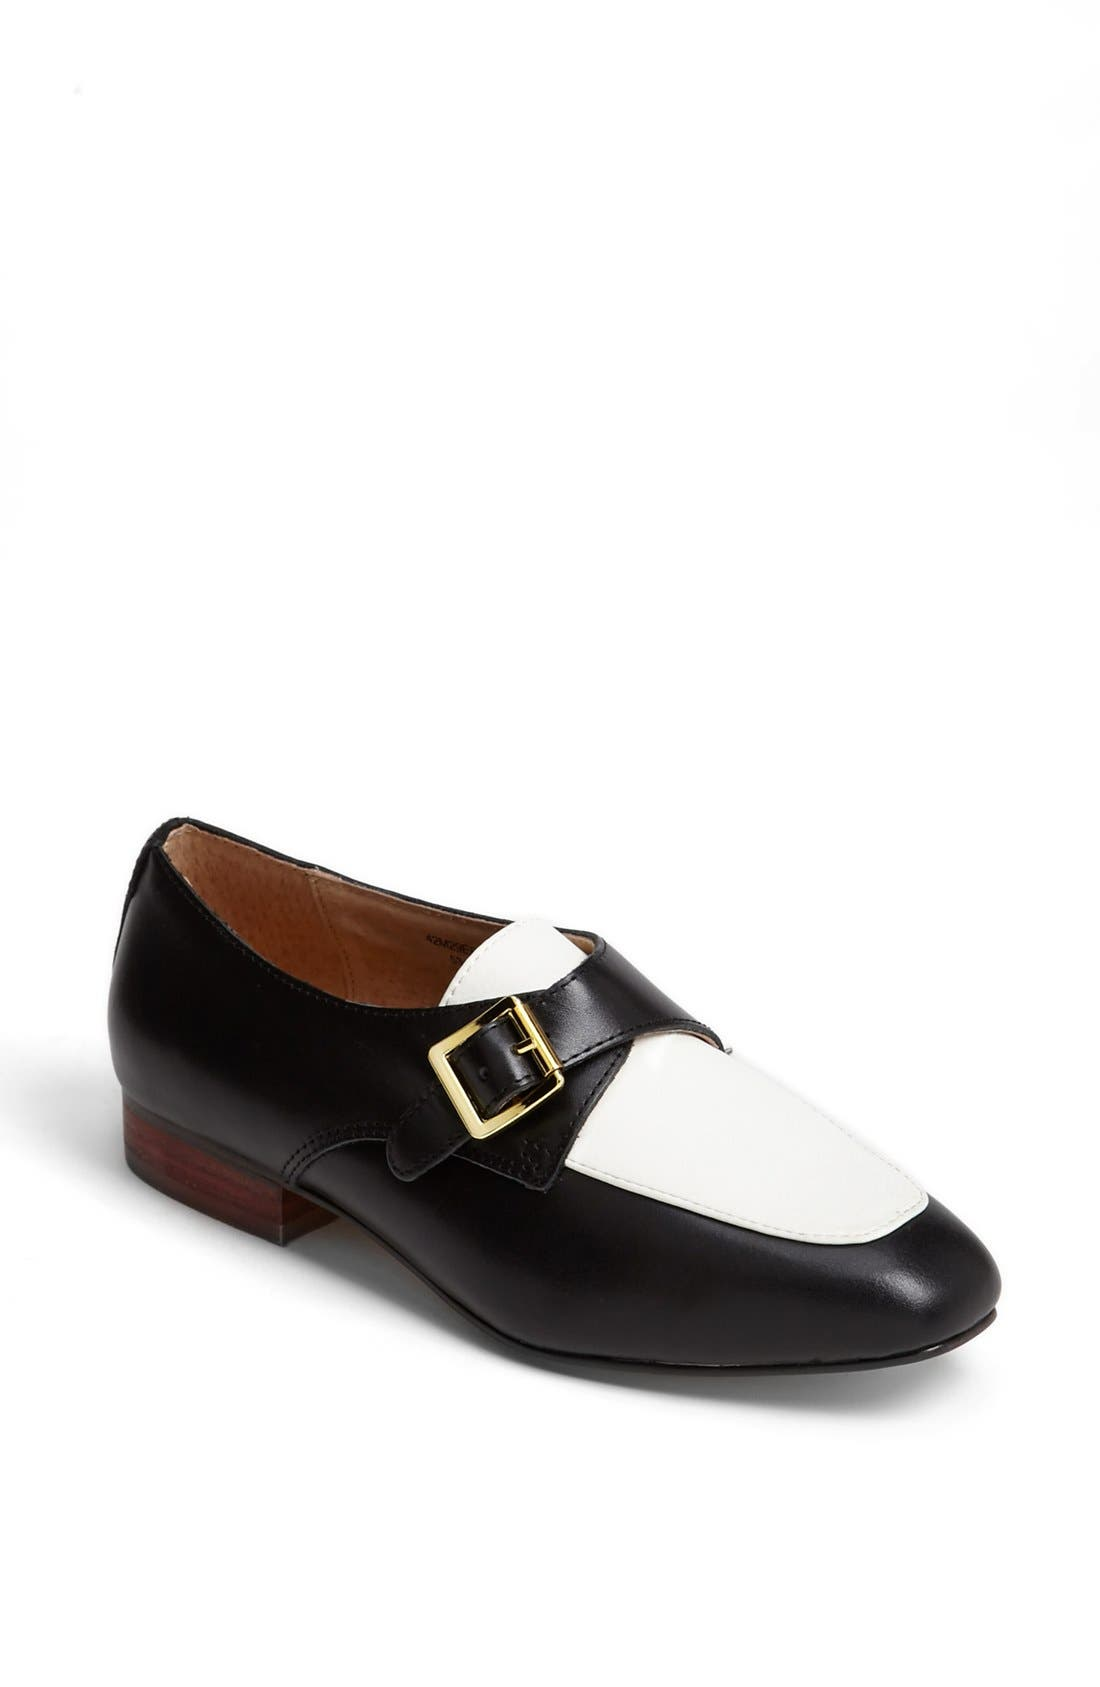 Alternate Image 1 Selected - Topshop 'Matie' Monk Strap Shoe